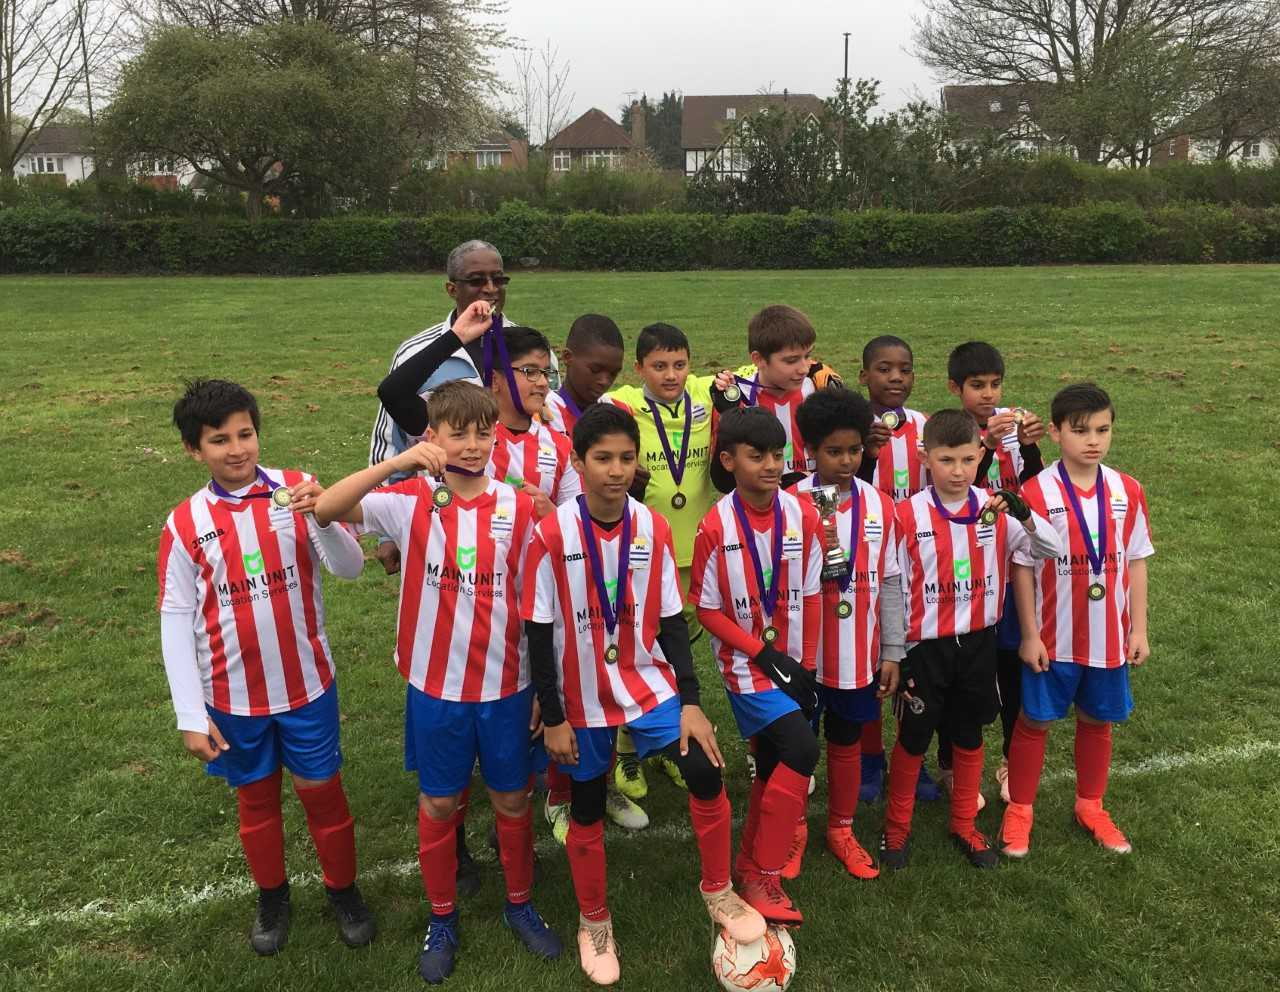 Langley FC Under-11s beat S4K Wolves 3-1 in the Thames Valley Football Development League Vase final at Kedermister Park.